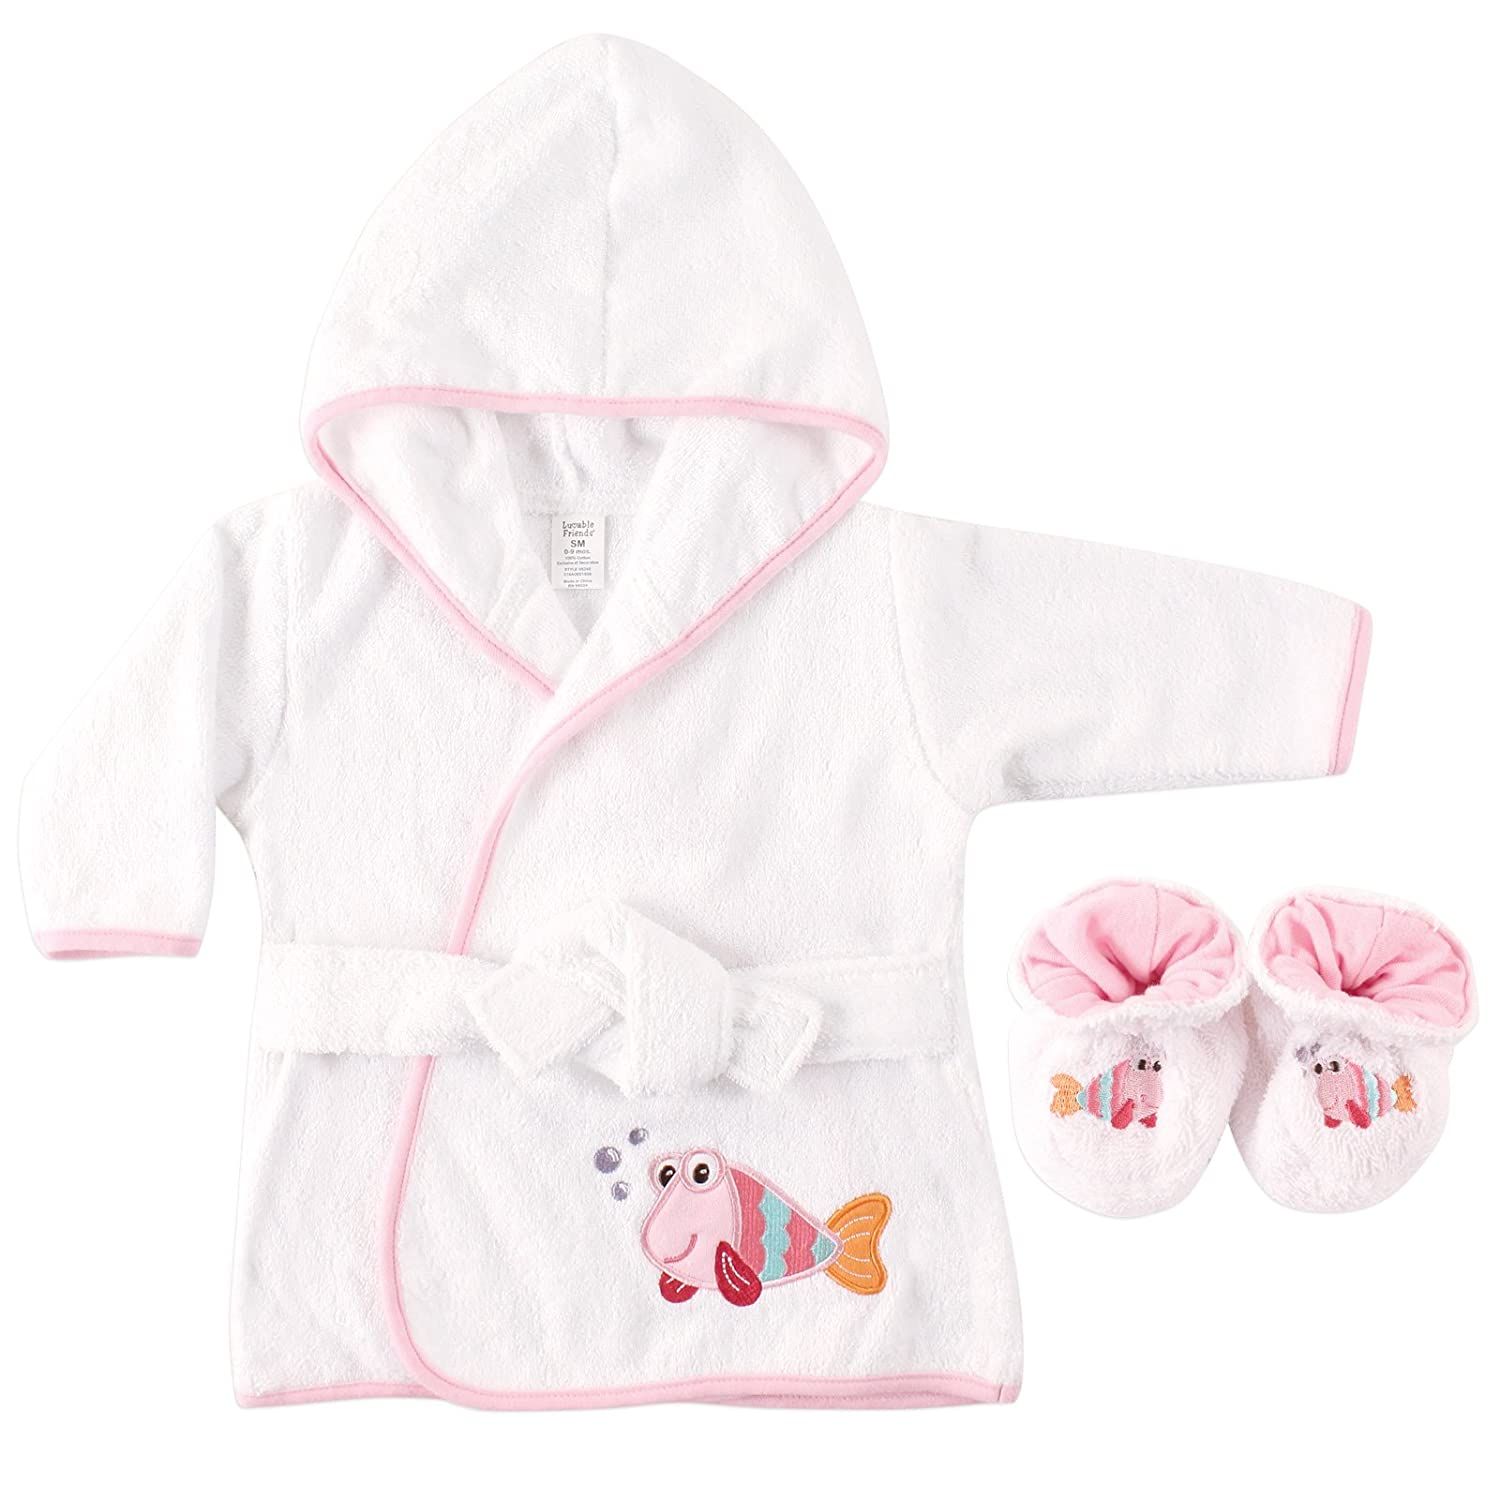 Amazon.com: Luvable Friends Woven Terry Baby Bath Robe with Slippers, Blue: Baby